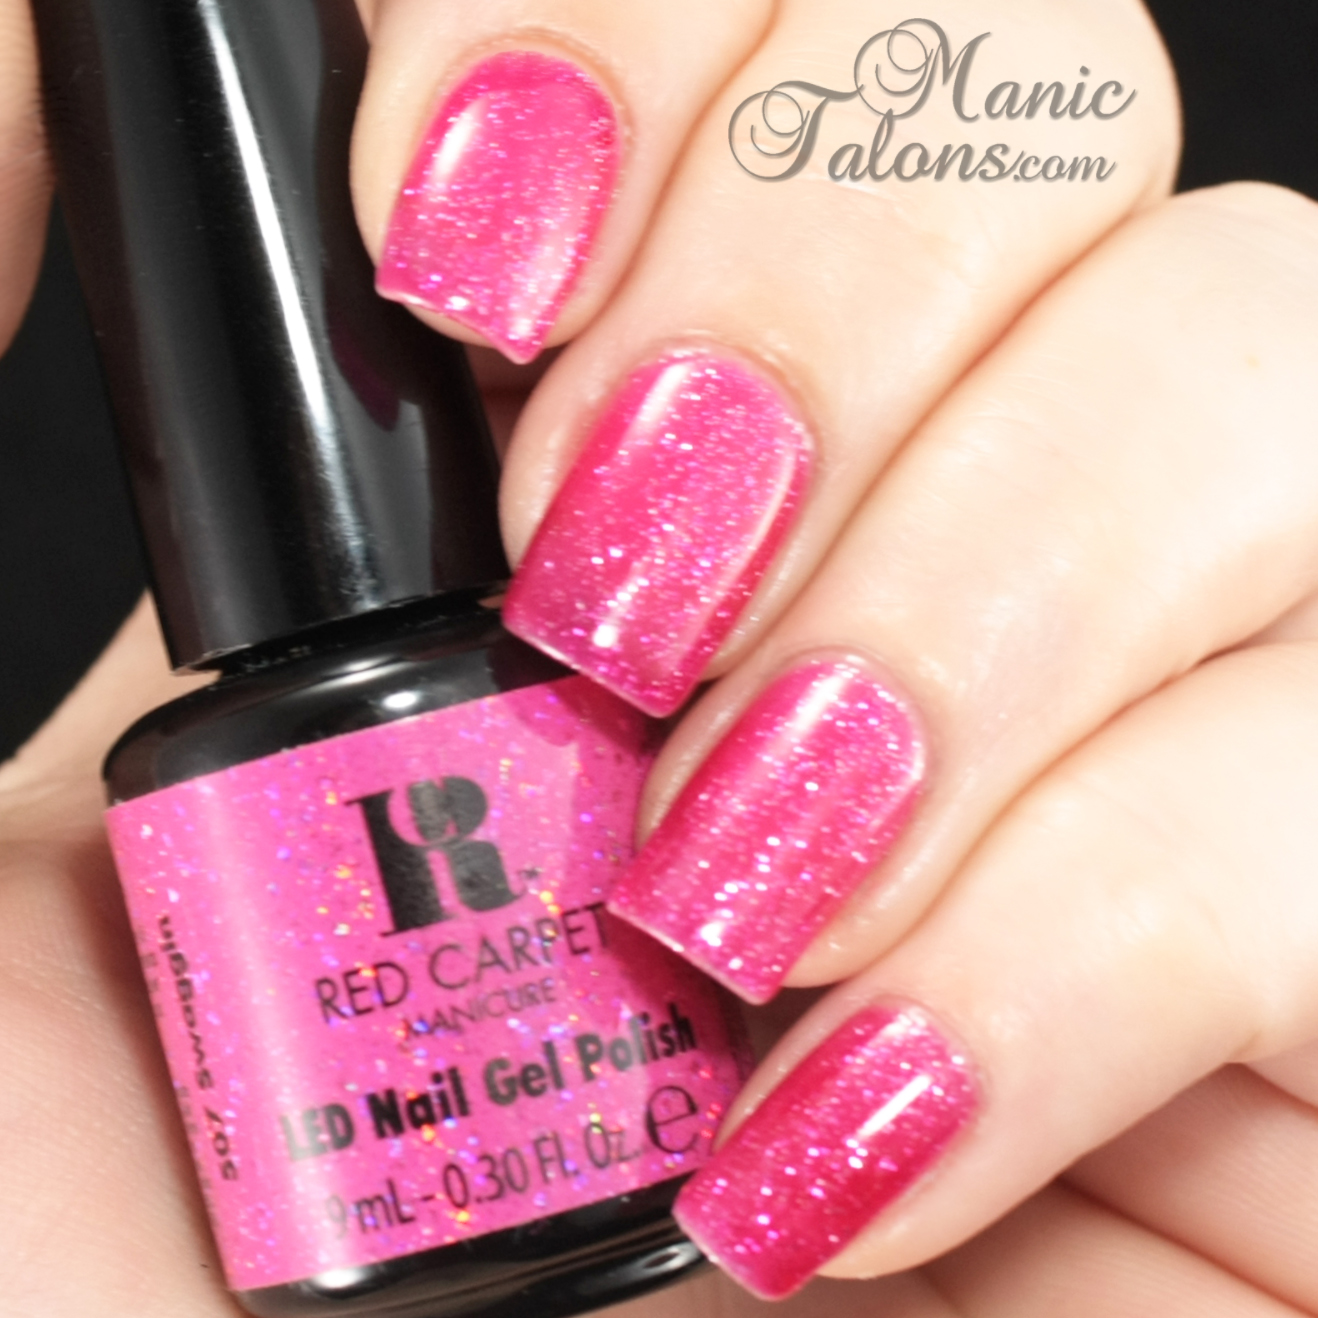 Manic Talons Nail Design: Valentine's Day Nails With Red